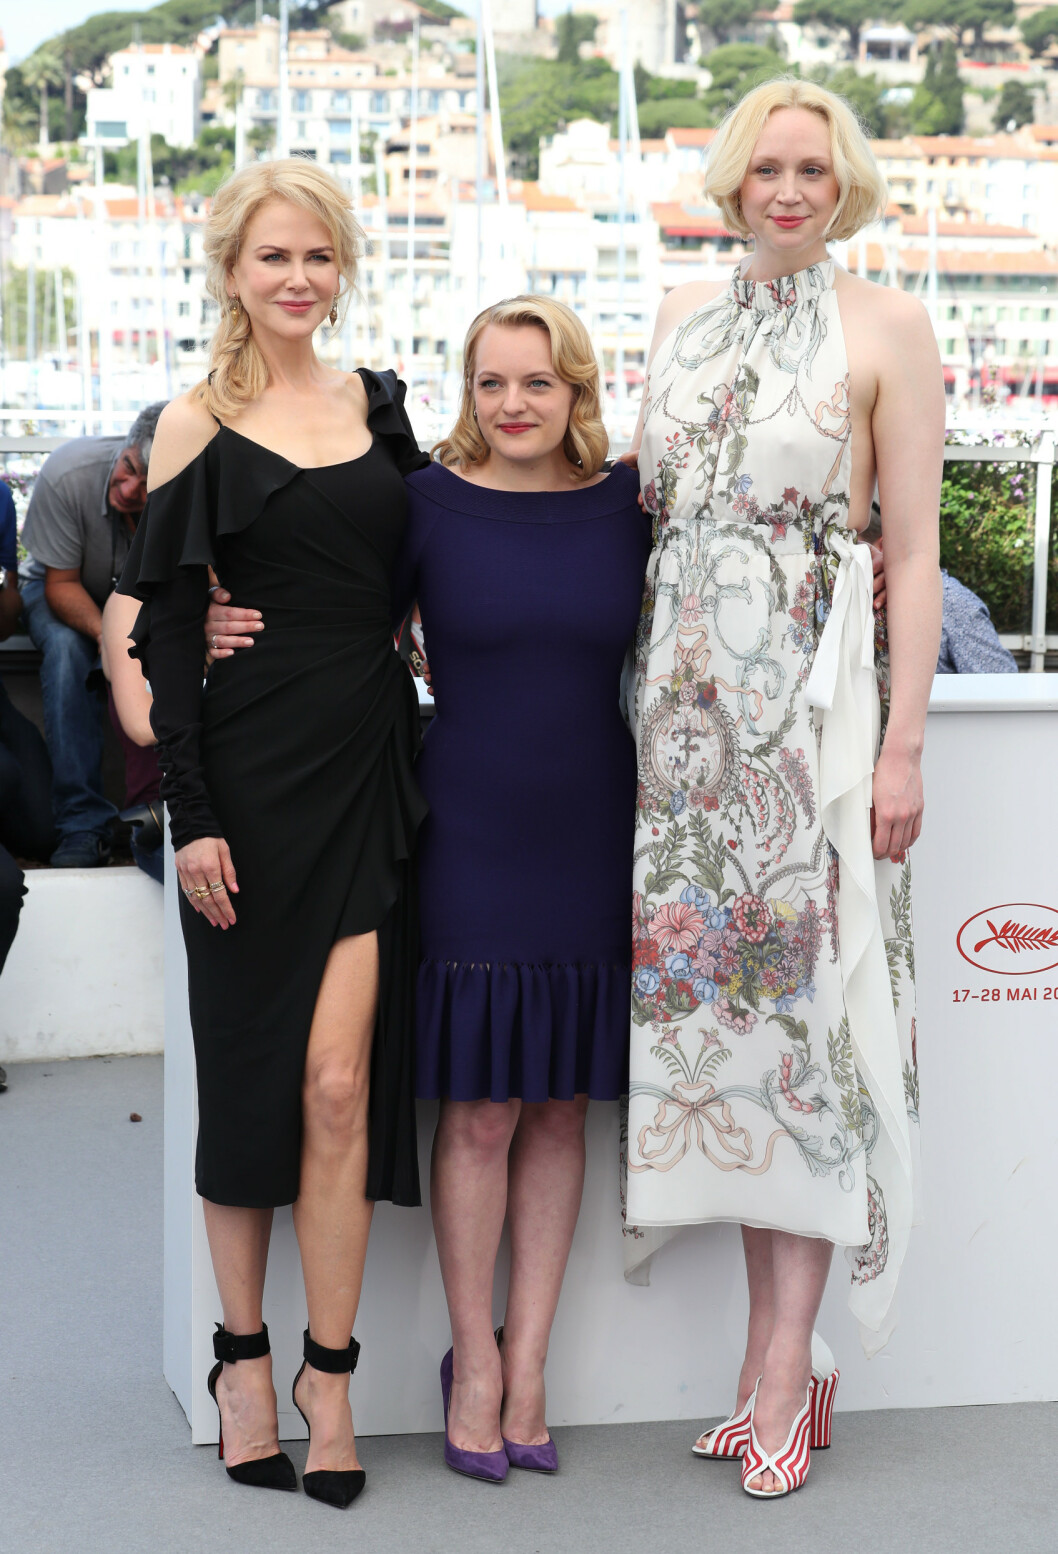 I GODT SELSKAP: Gwendoline Christie med 'Top of the Lake: China Girl'-kollegene Nicole Kidman og Elisabeth Moss under filmfestivalen i Cannes i mai 2017. FOTO: NTB Scanpix